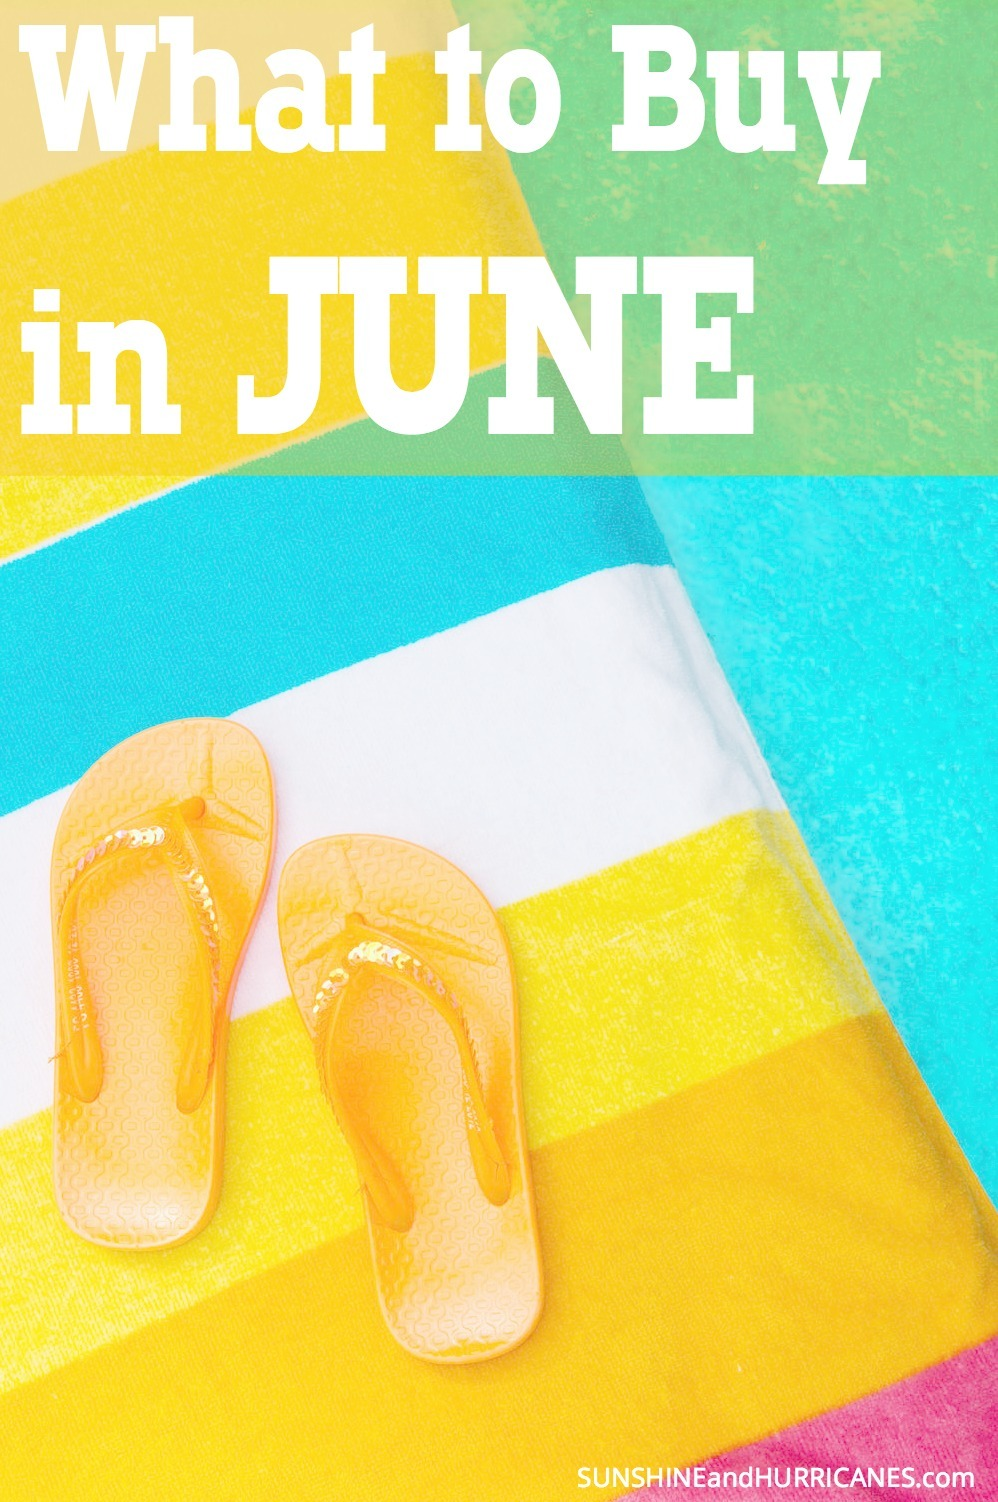 You want to make sure you're getting the best deal possible on everything you buy, right? For each month of the year there are items that will NEVER be priced lower. This post gives you all the information you need to know about What to Buy in June. SunshineandHurricanes.com